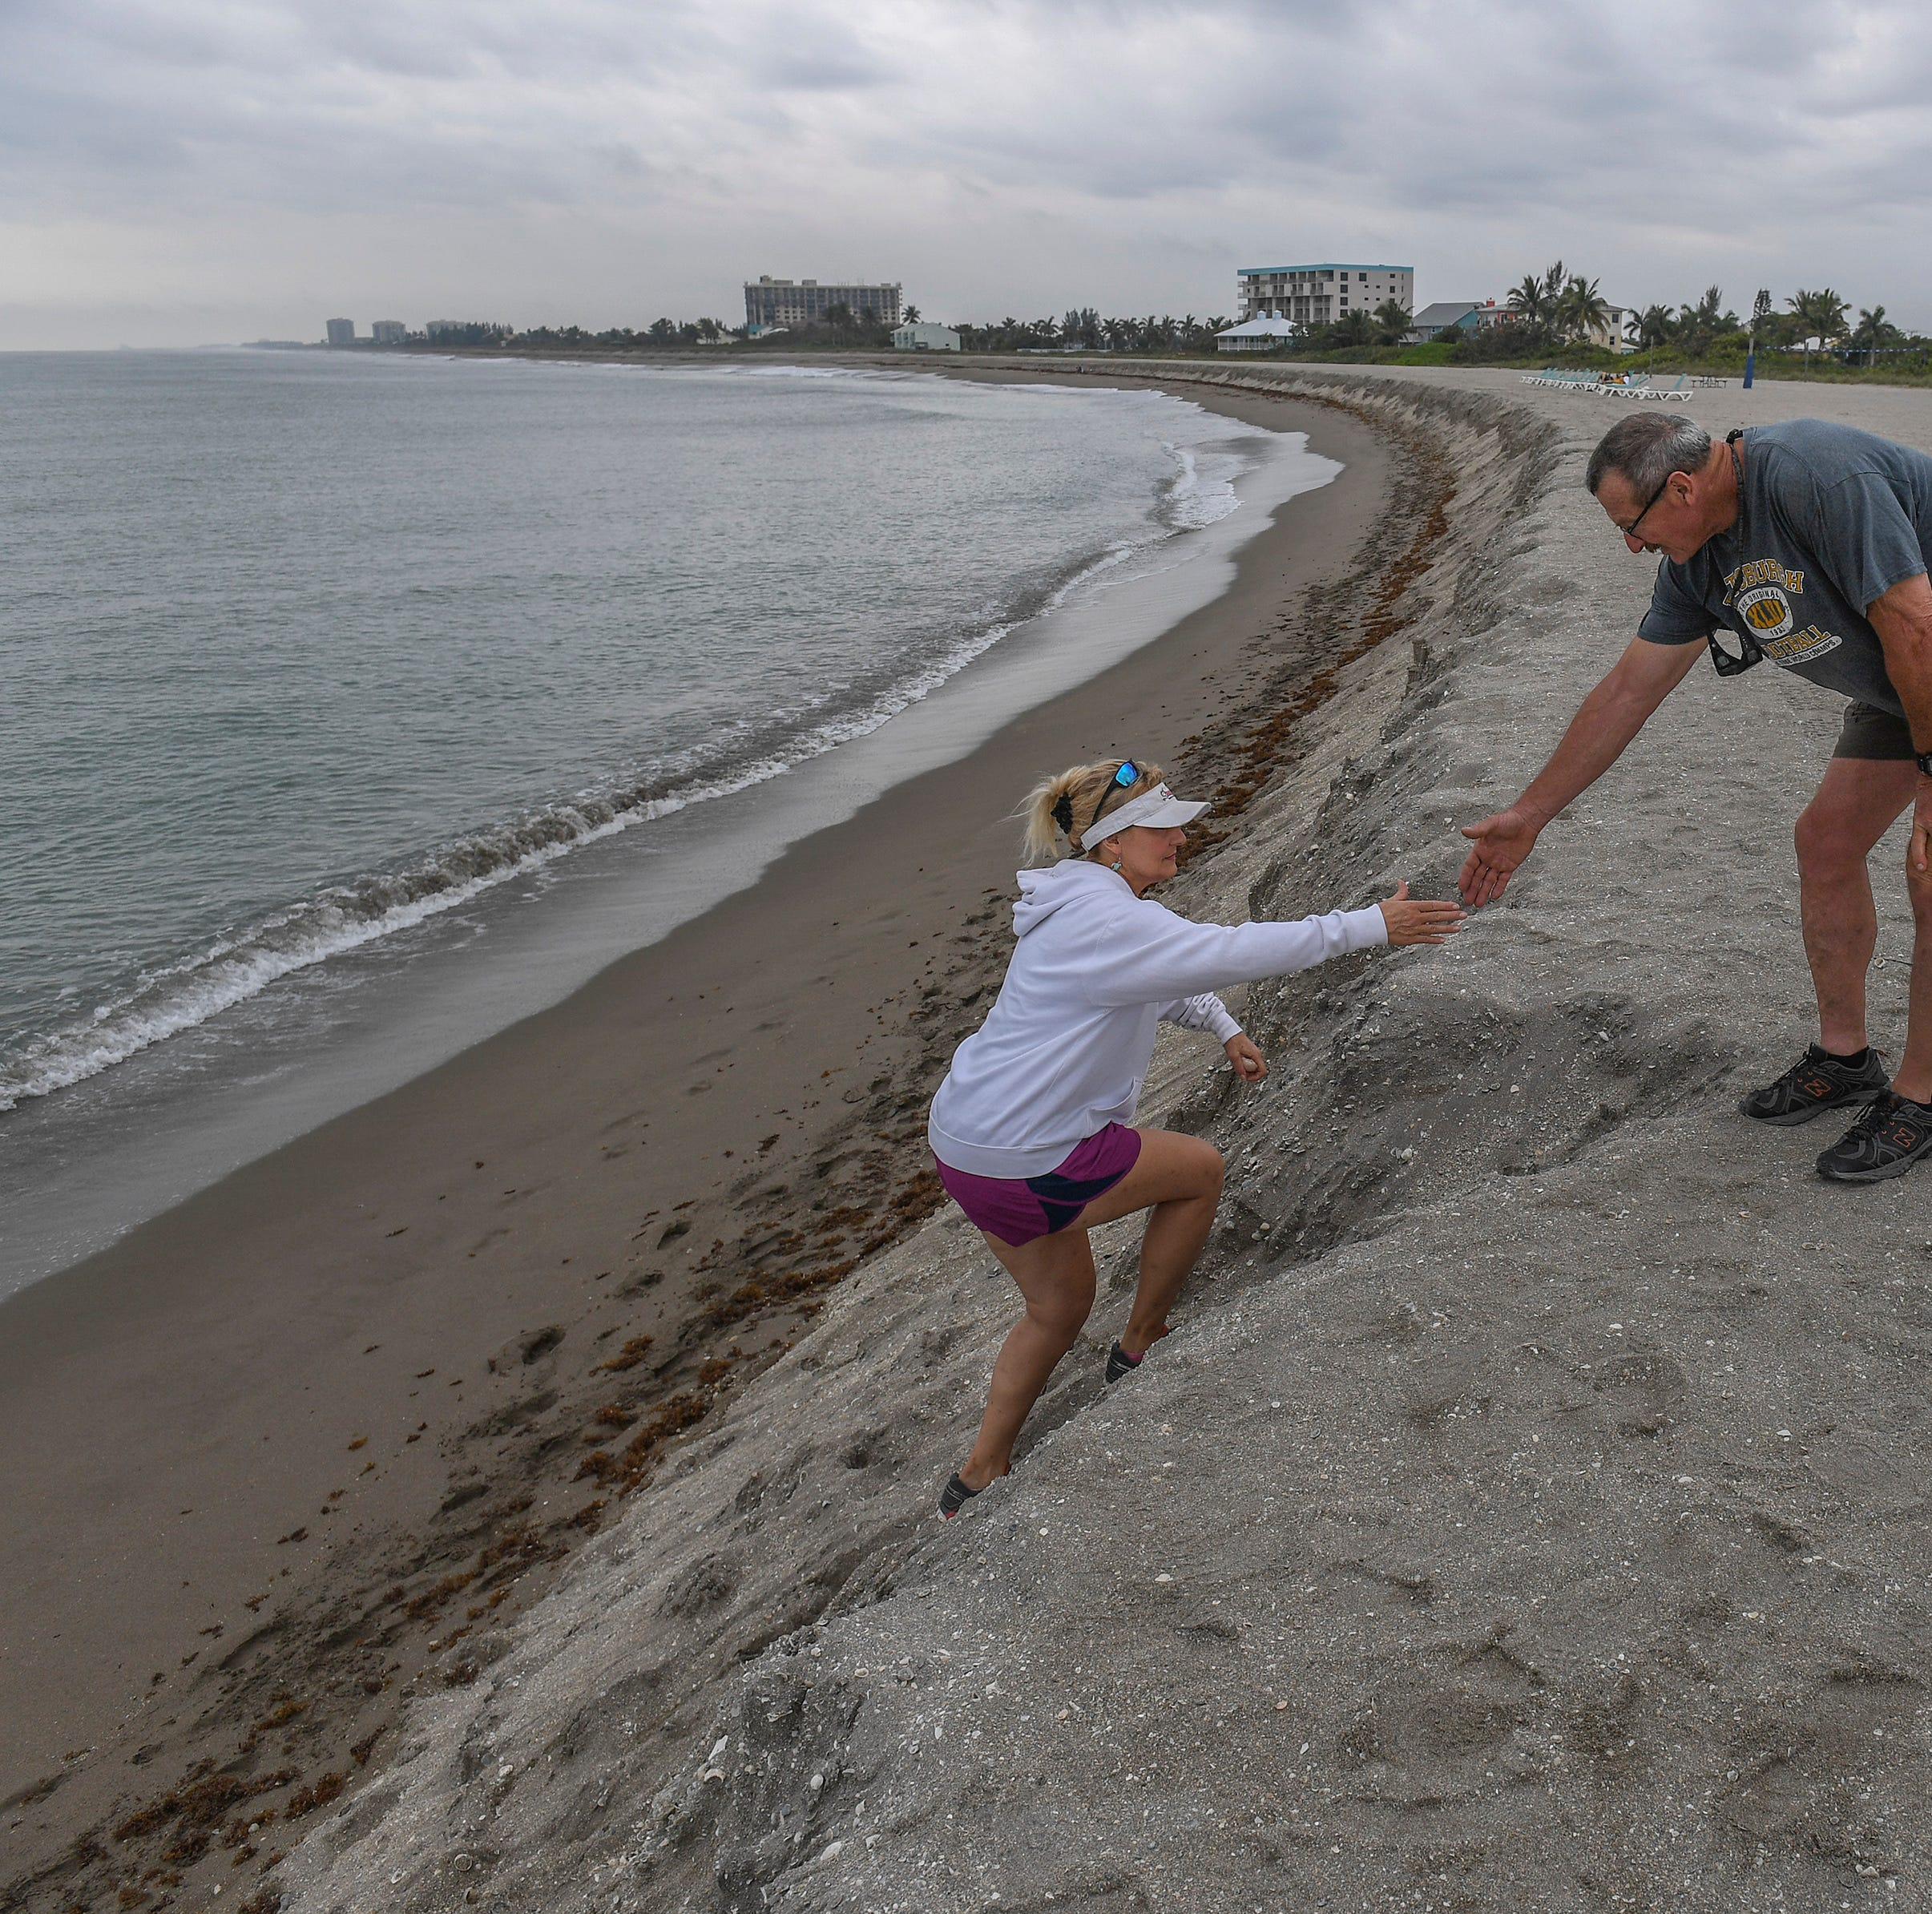 St. Lucie County may need $17 million for beach fix — but there's a way to cut costs   Gil Smart